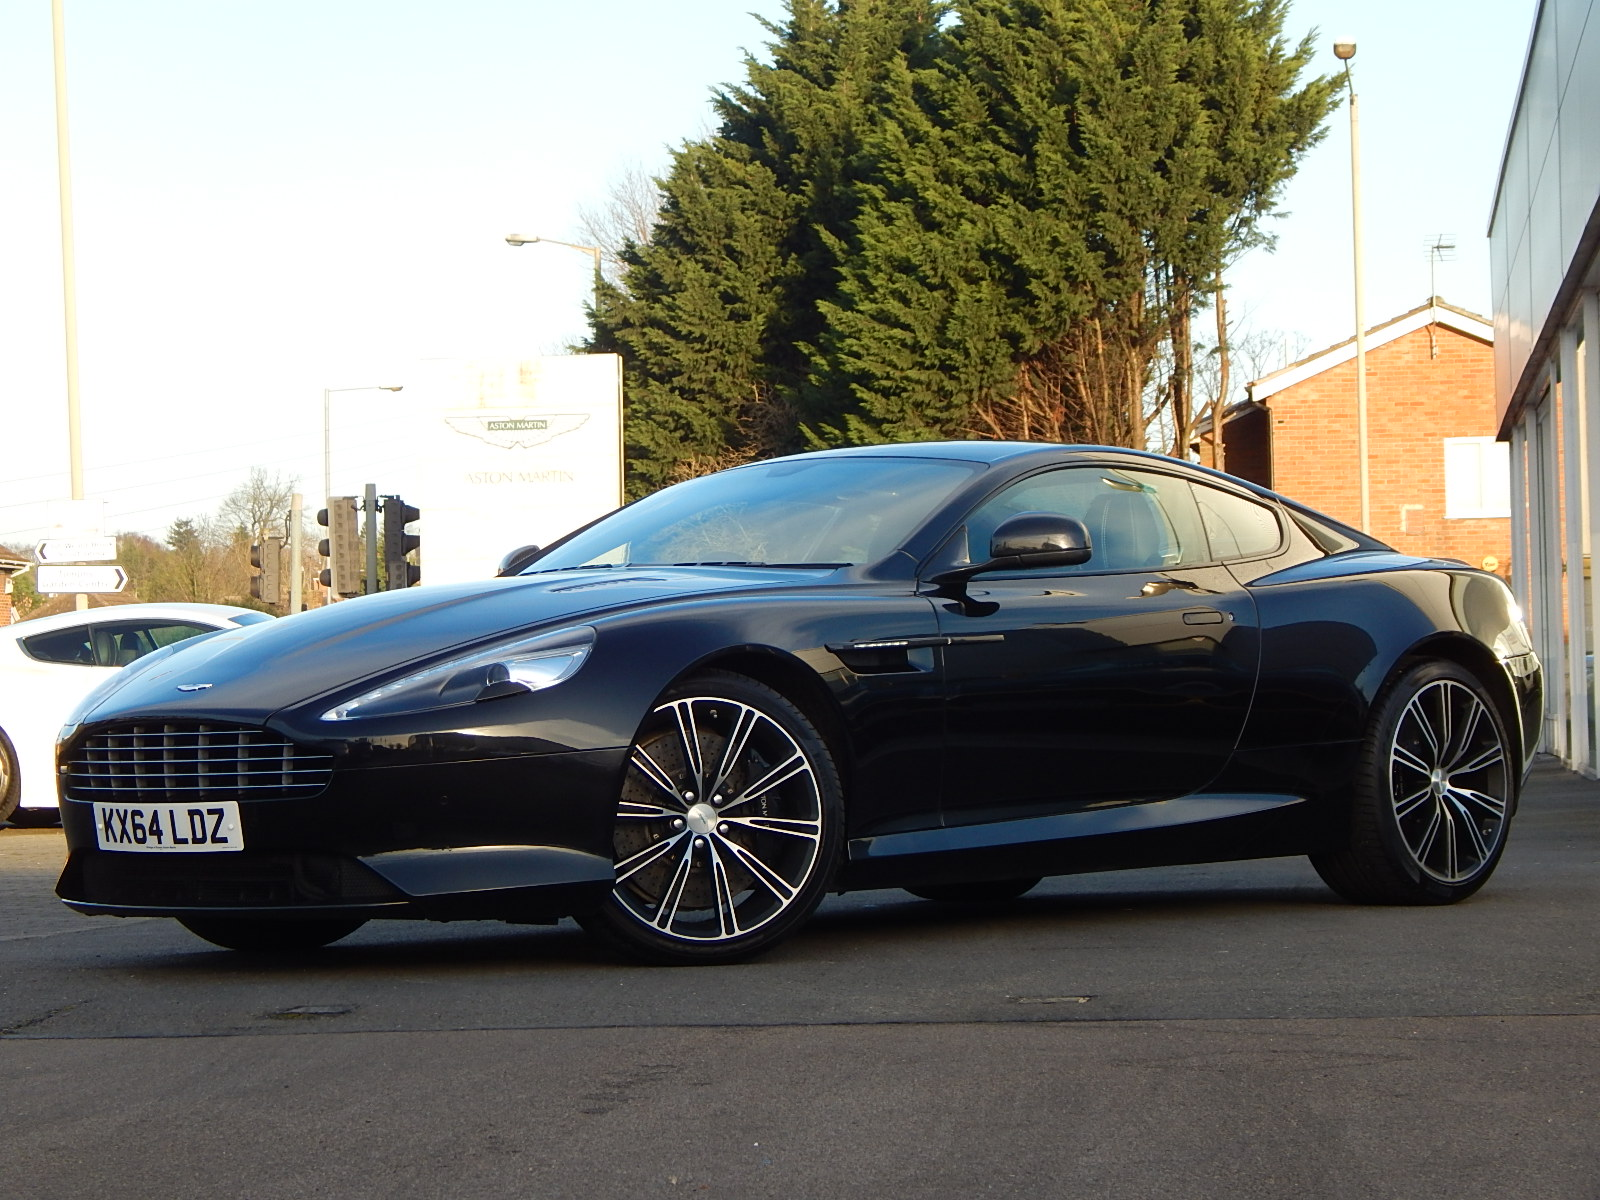 Aston Martin DB9 V12 2dr Touchtronic, Carbon Edition image 1